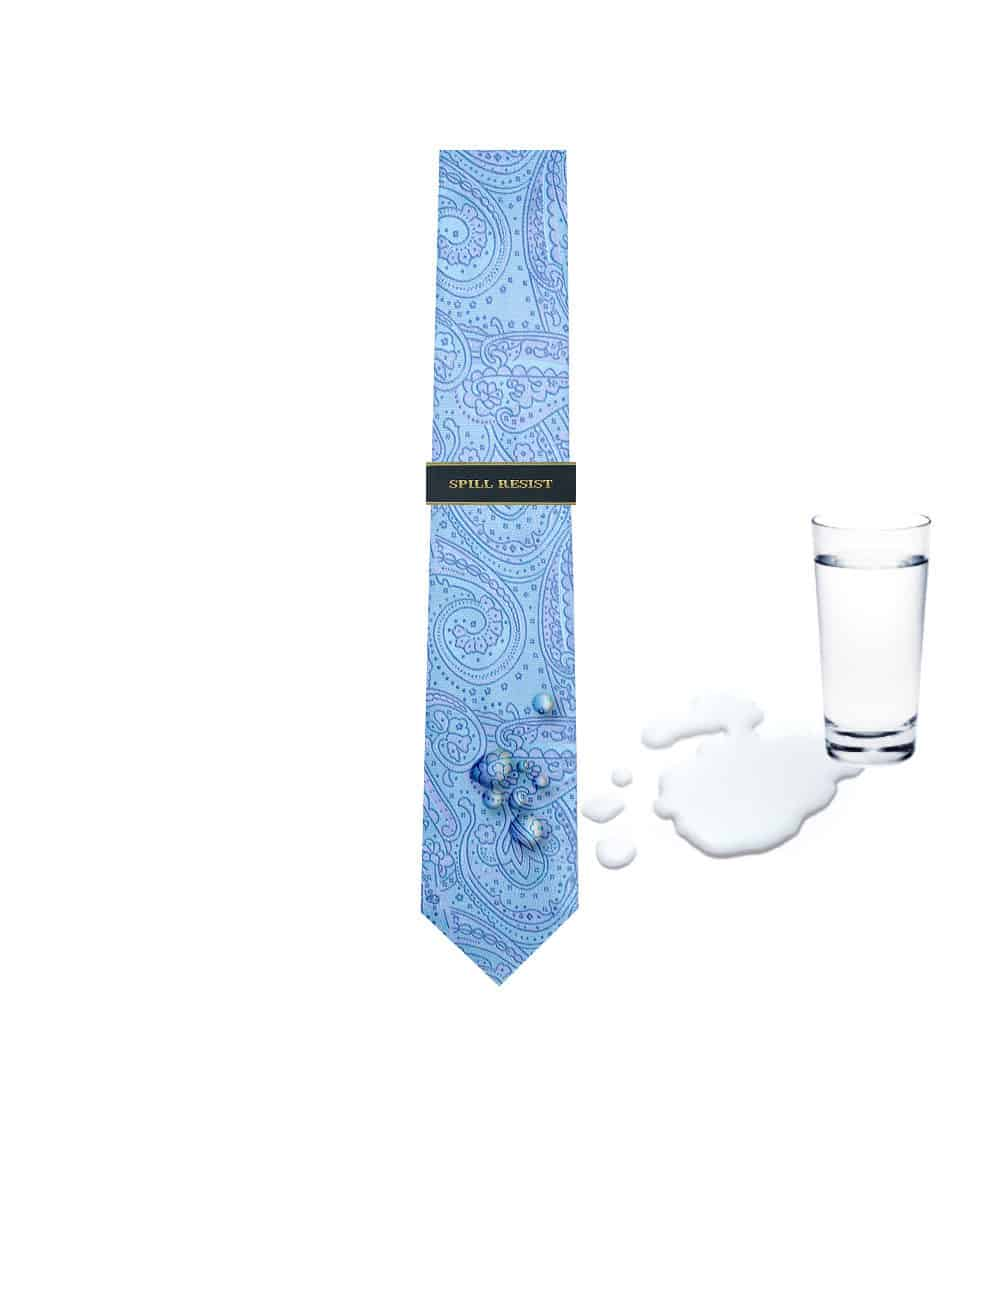 Turquoise Floral Spill Resist Woven Reversible Necktie RNT5.9